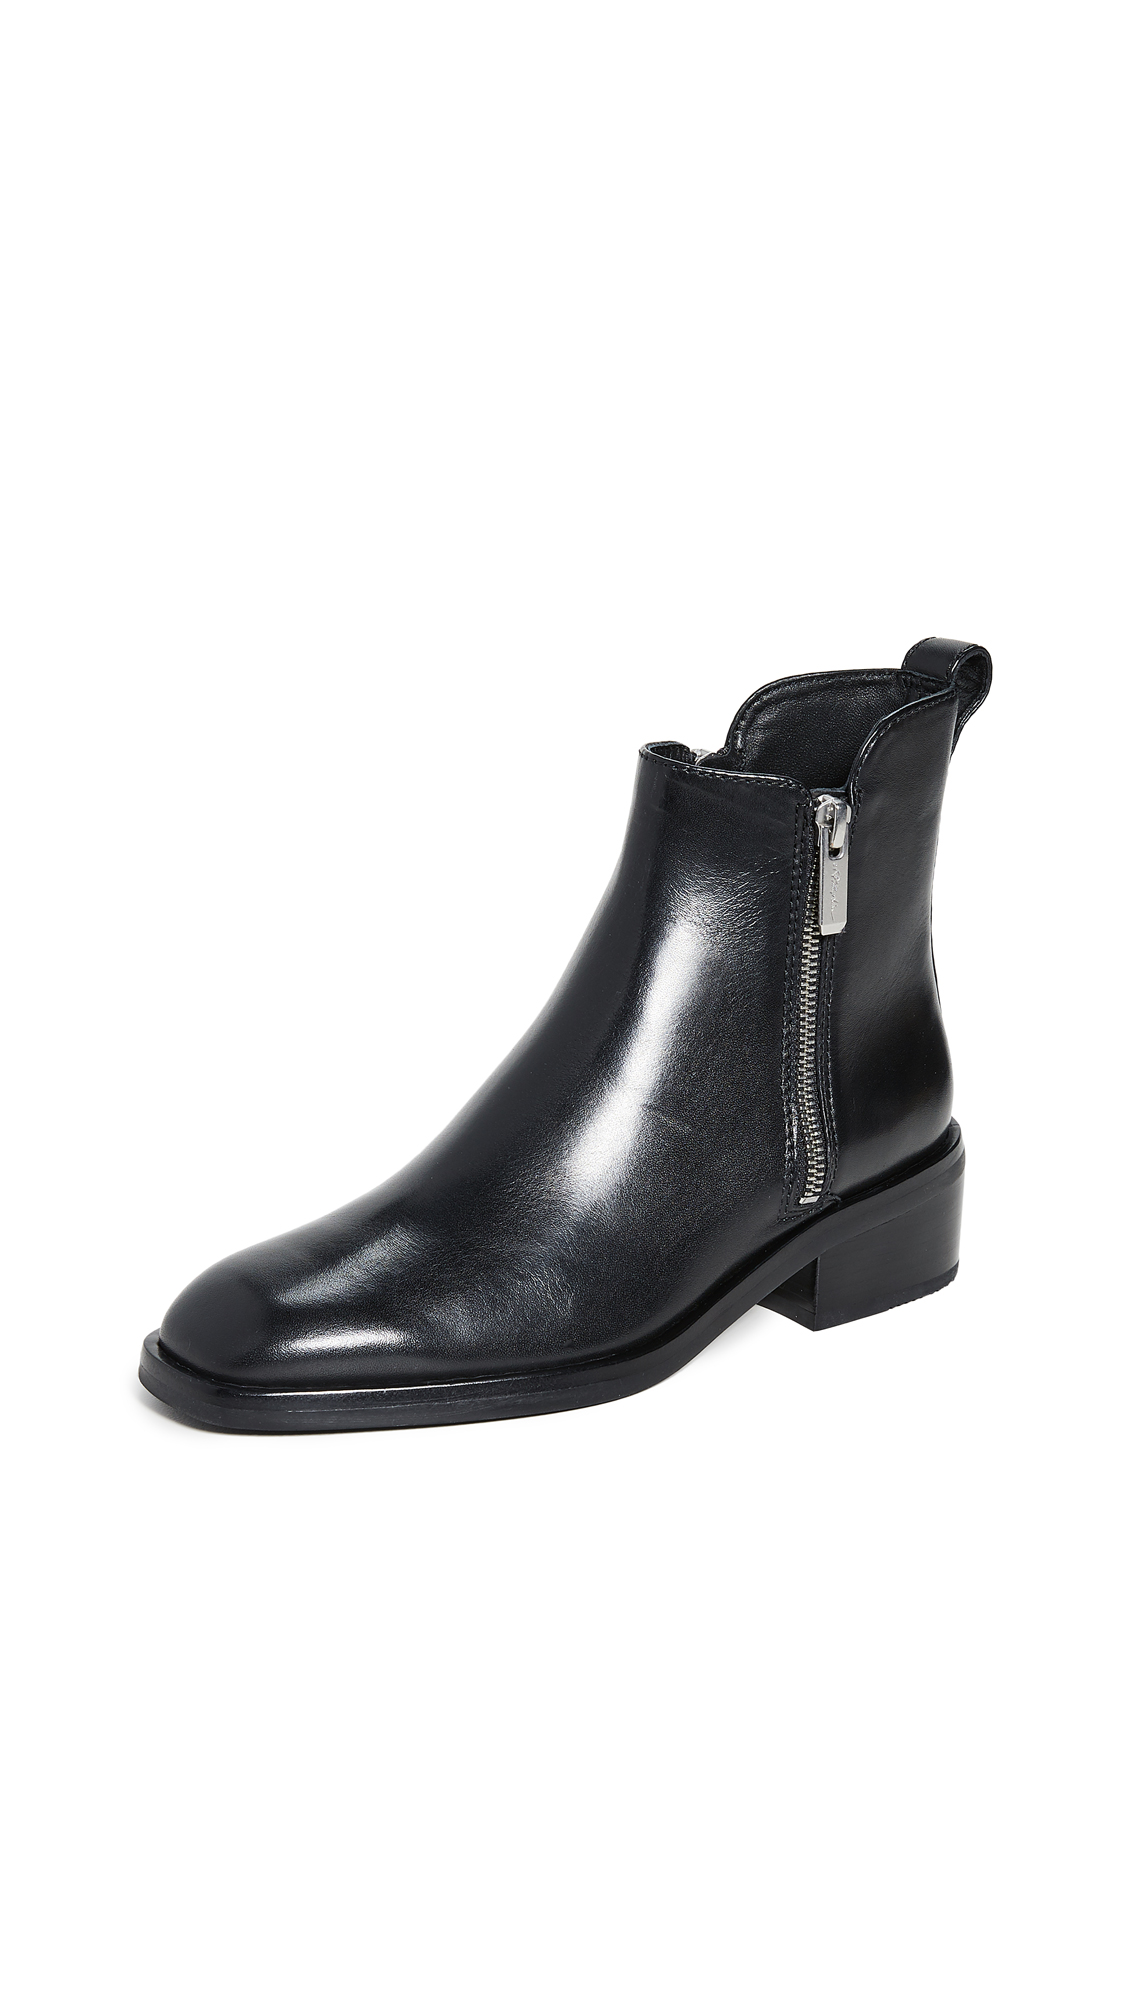 Buy 3.1 Phillip Lim online - photo of 3.1 Phillip Lim Alexa 40mm Boots